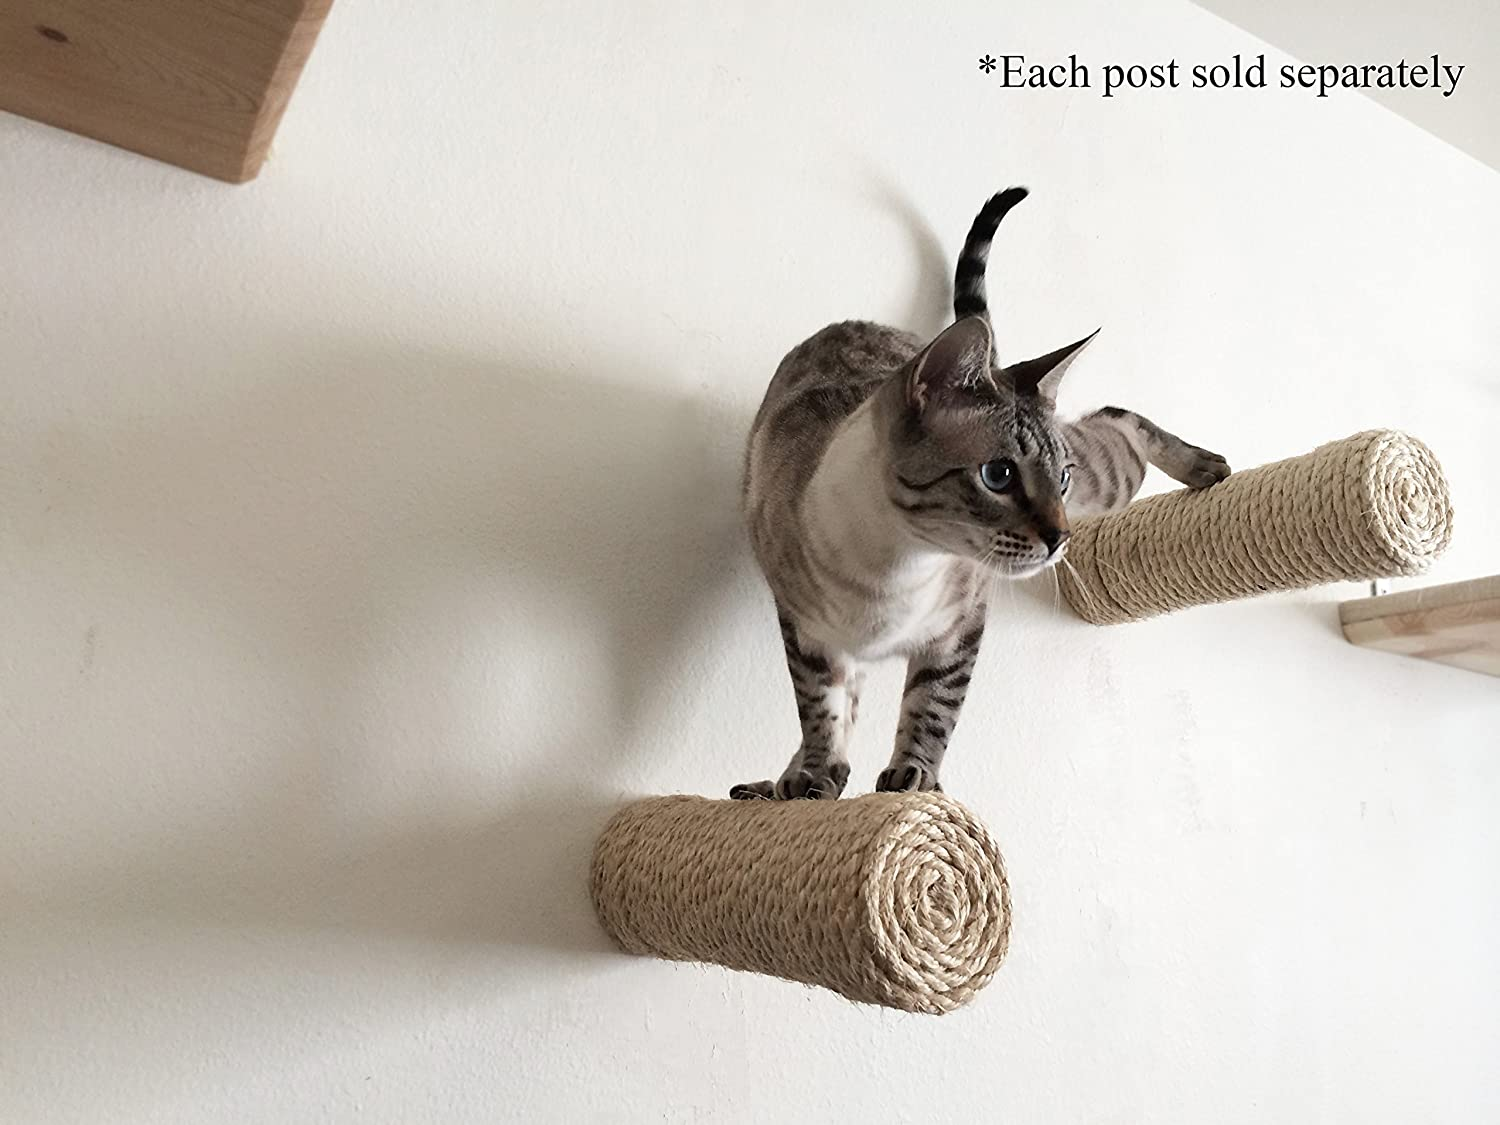 Modern Cat Wall Sisal Post Wall Step Post Cat Step Cat Gym, Cat Stairs Wall Step Cat Climbing Floating Wall Steps